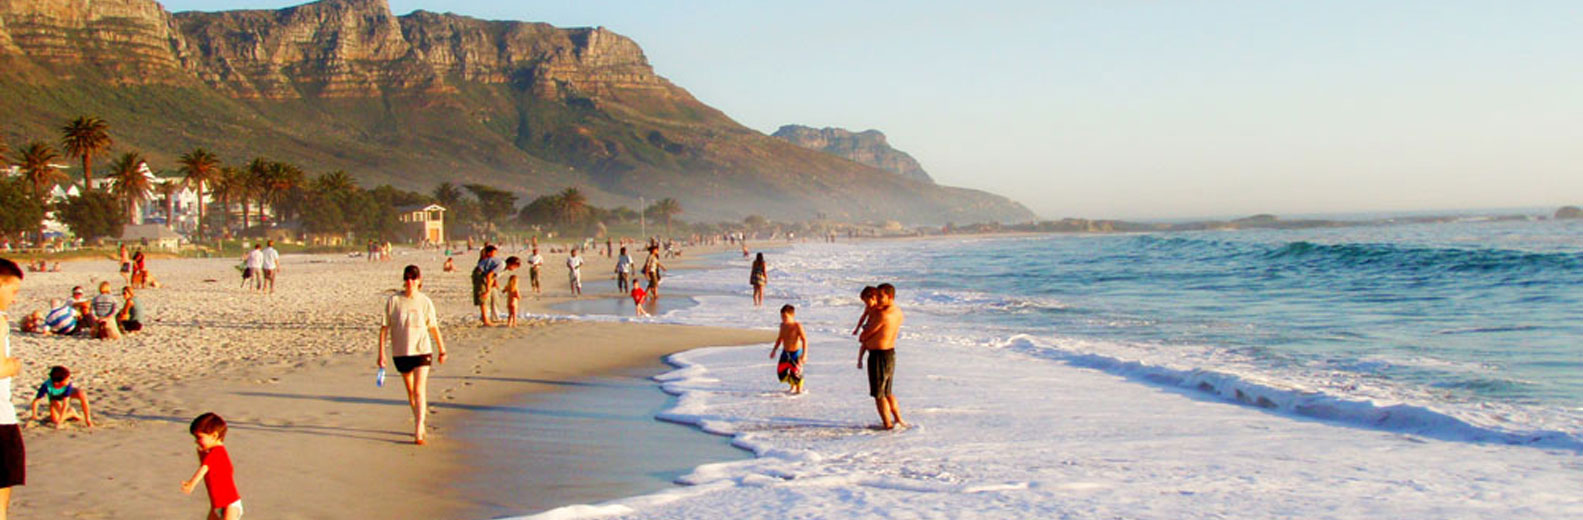 Camps Bay's world-famous beach, Cape Town